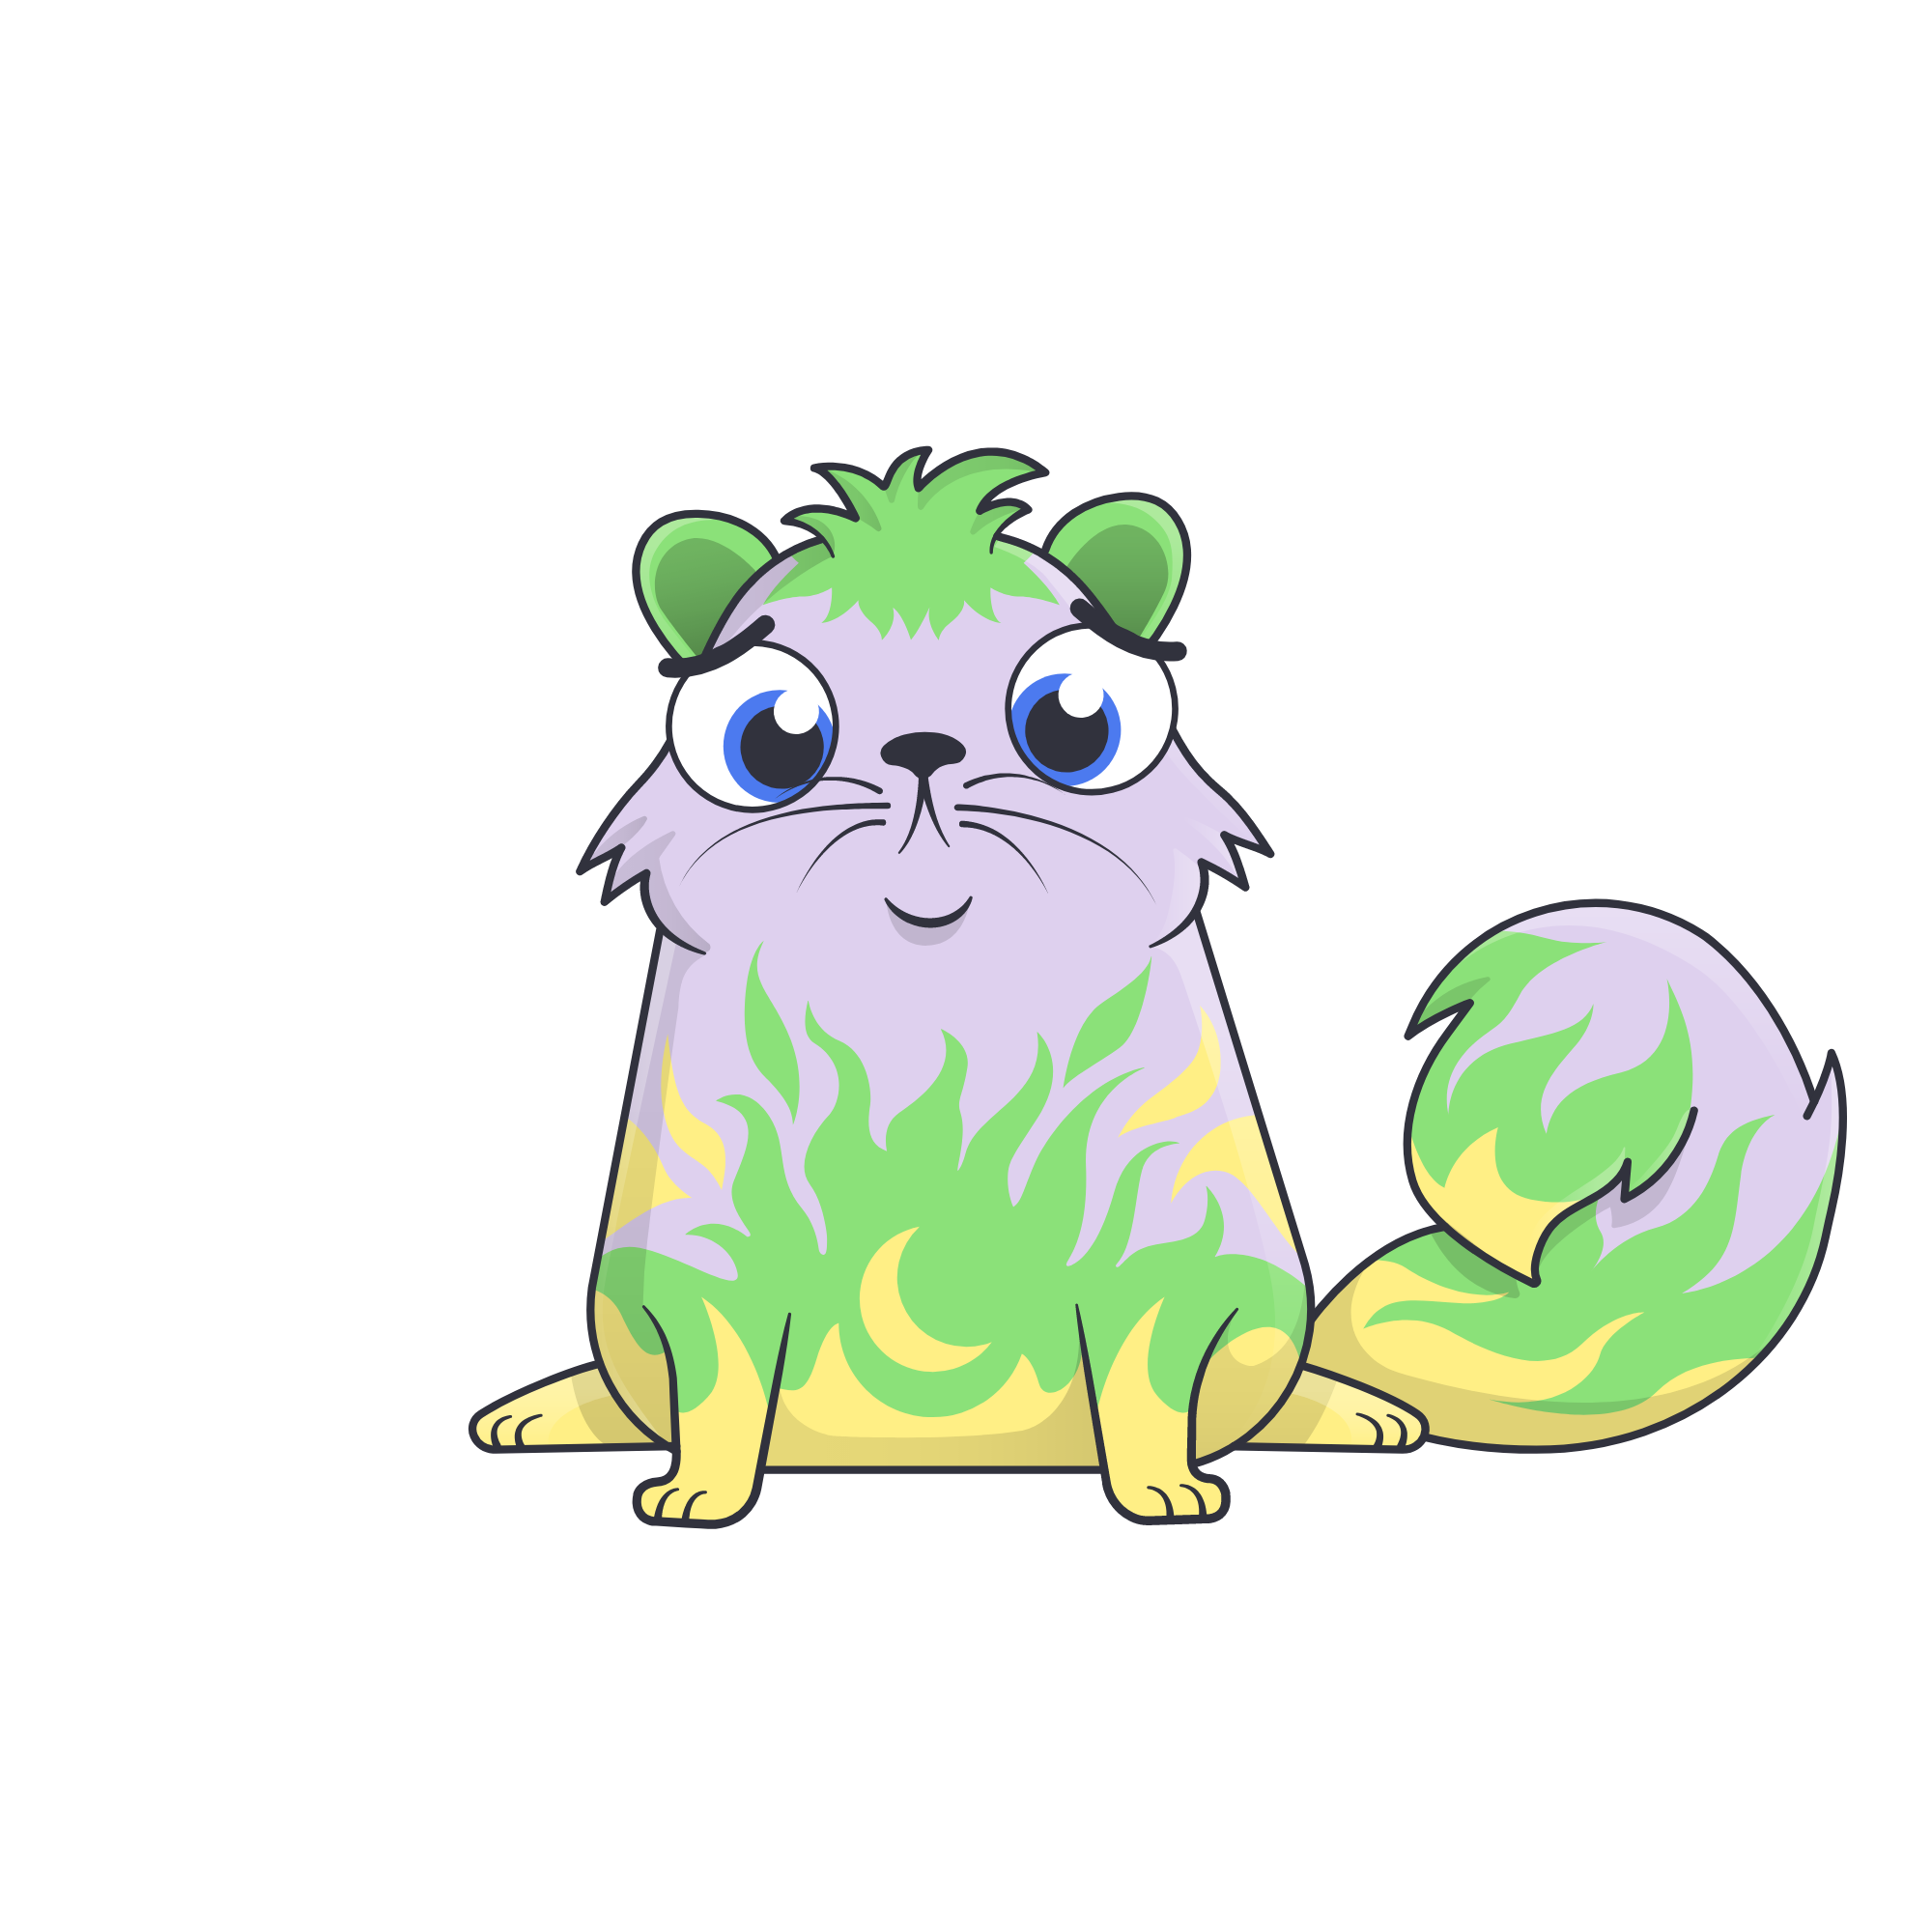 cryptokitty #1542036